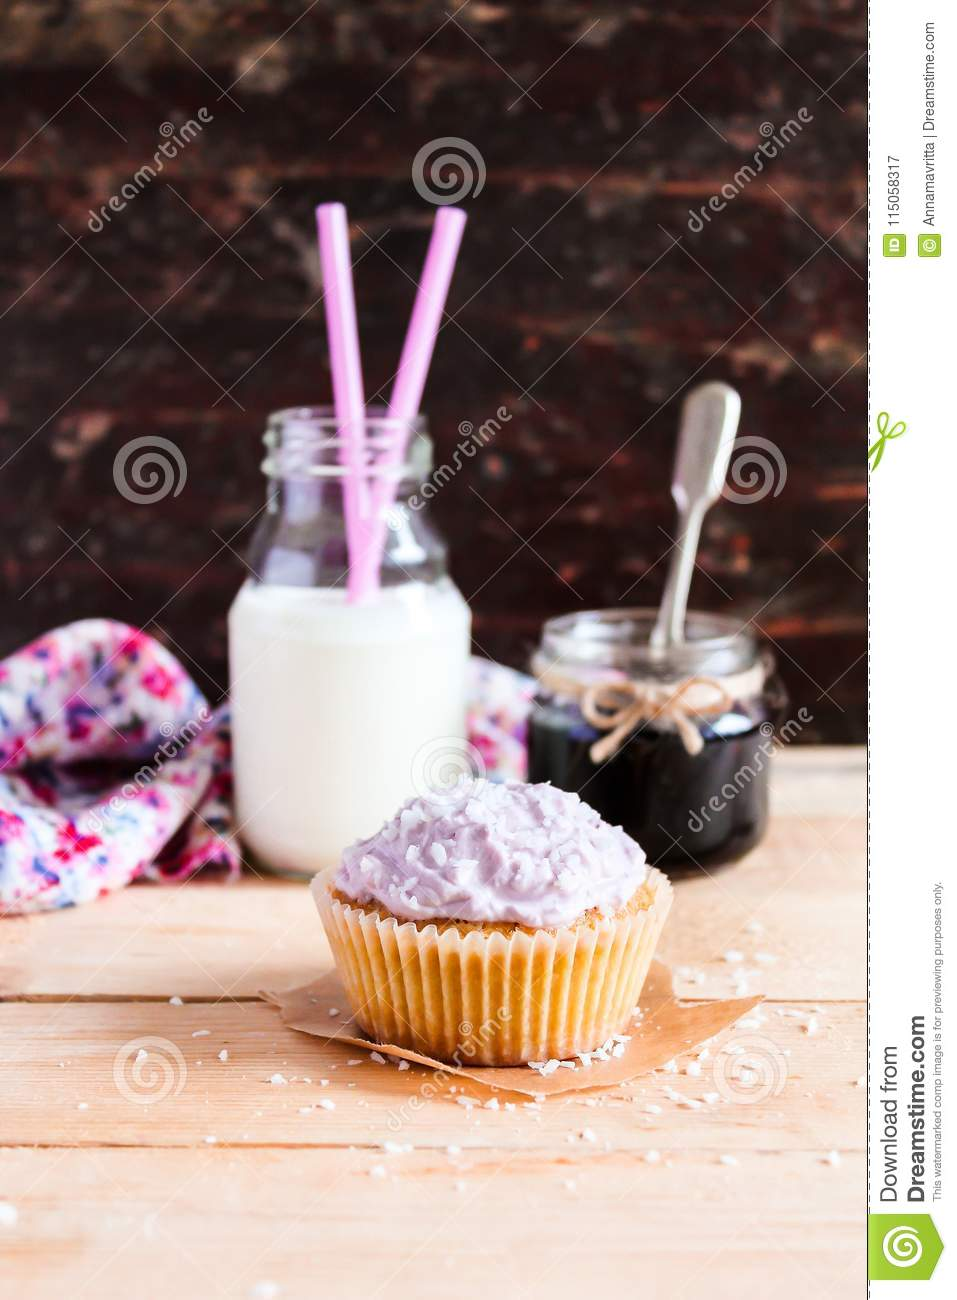 Cupcakes with mascarpone cream cheese, black currant jelly jam and freshly shredded coconut on a wooden table with a bottle of mil